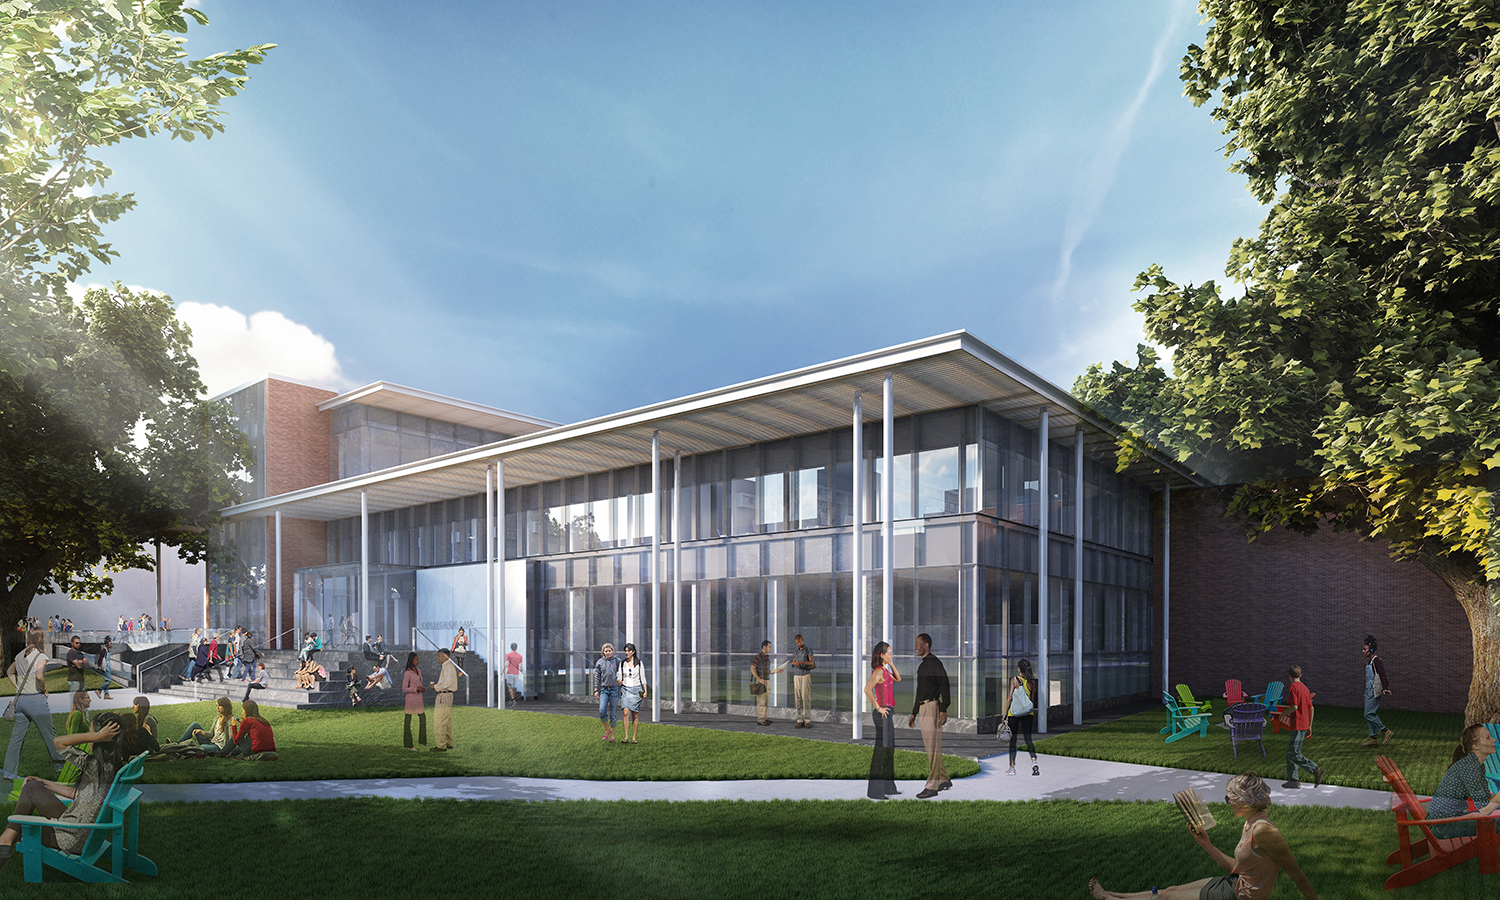 Law School Renovation & Expansion New Exterior View of Memorial Hall Lawn